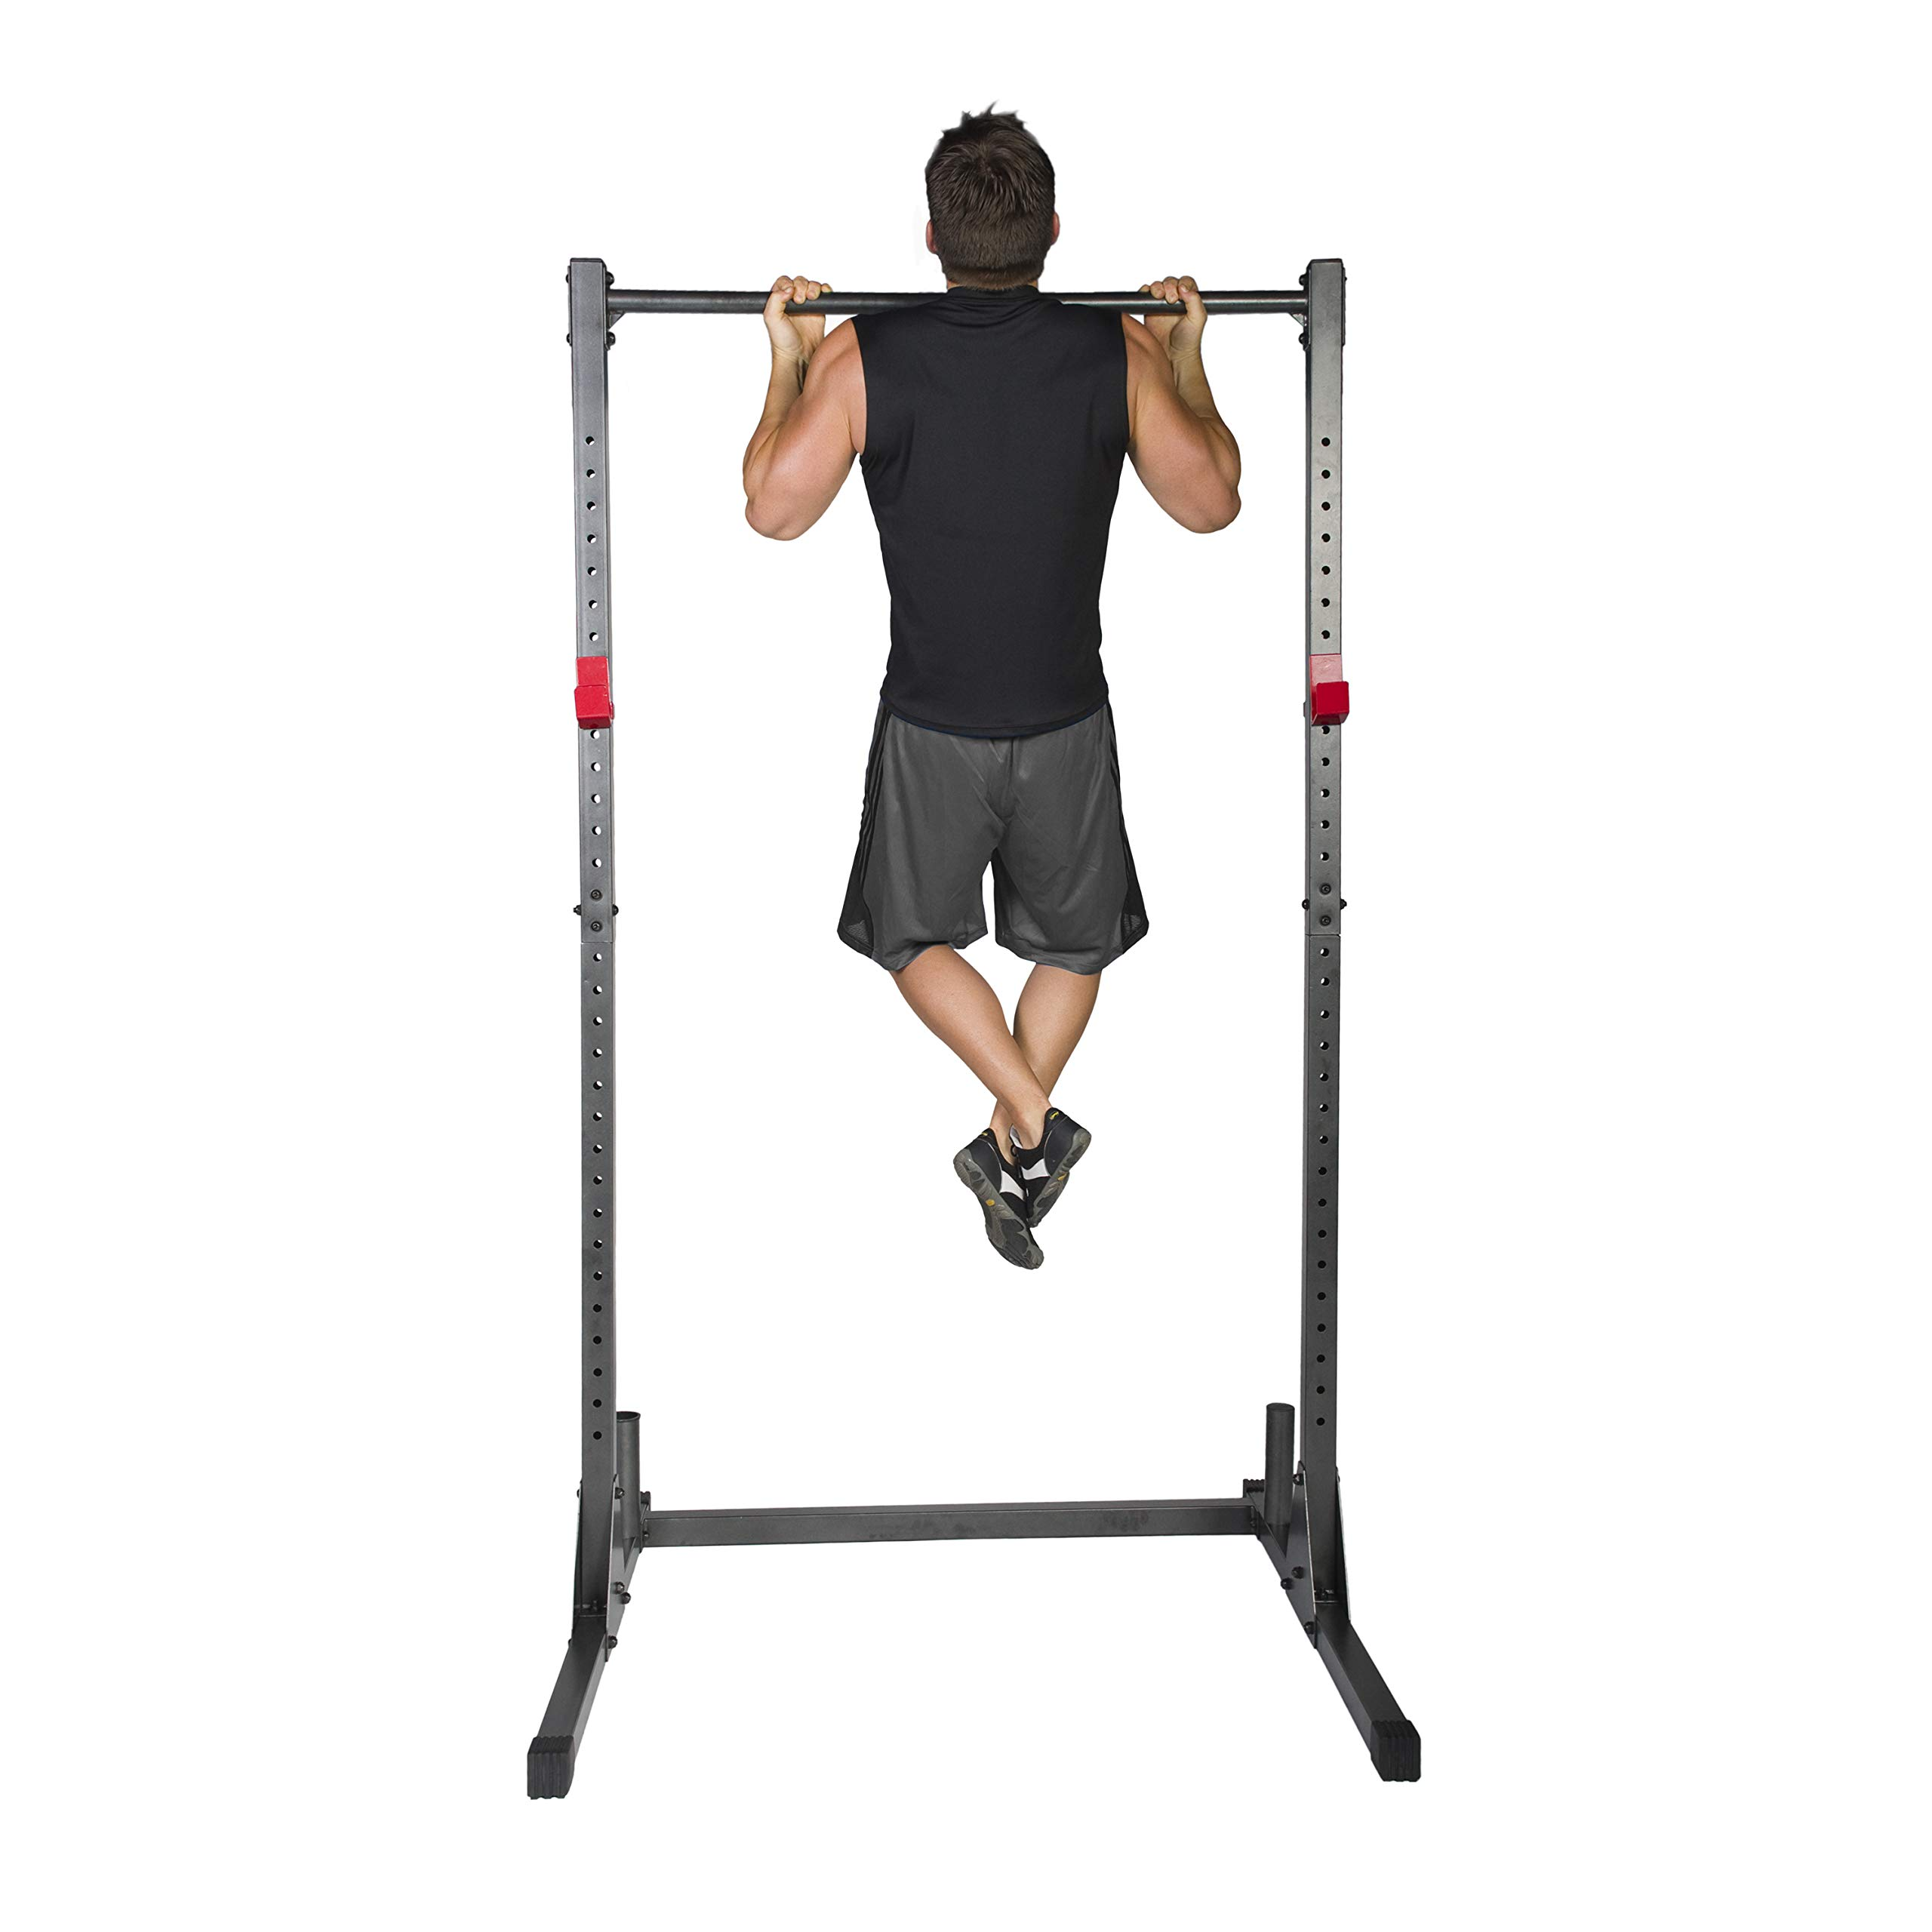 CAP Barbell Power Rack Exercise Stand, Multiple Colors by CAP Barbell (Image #5)